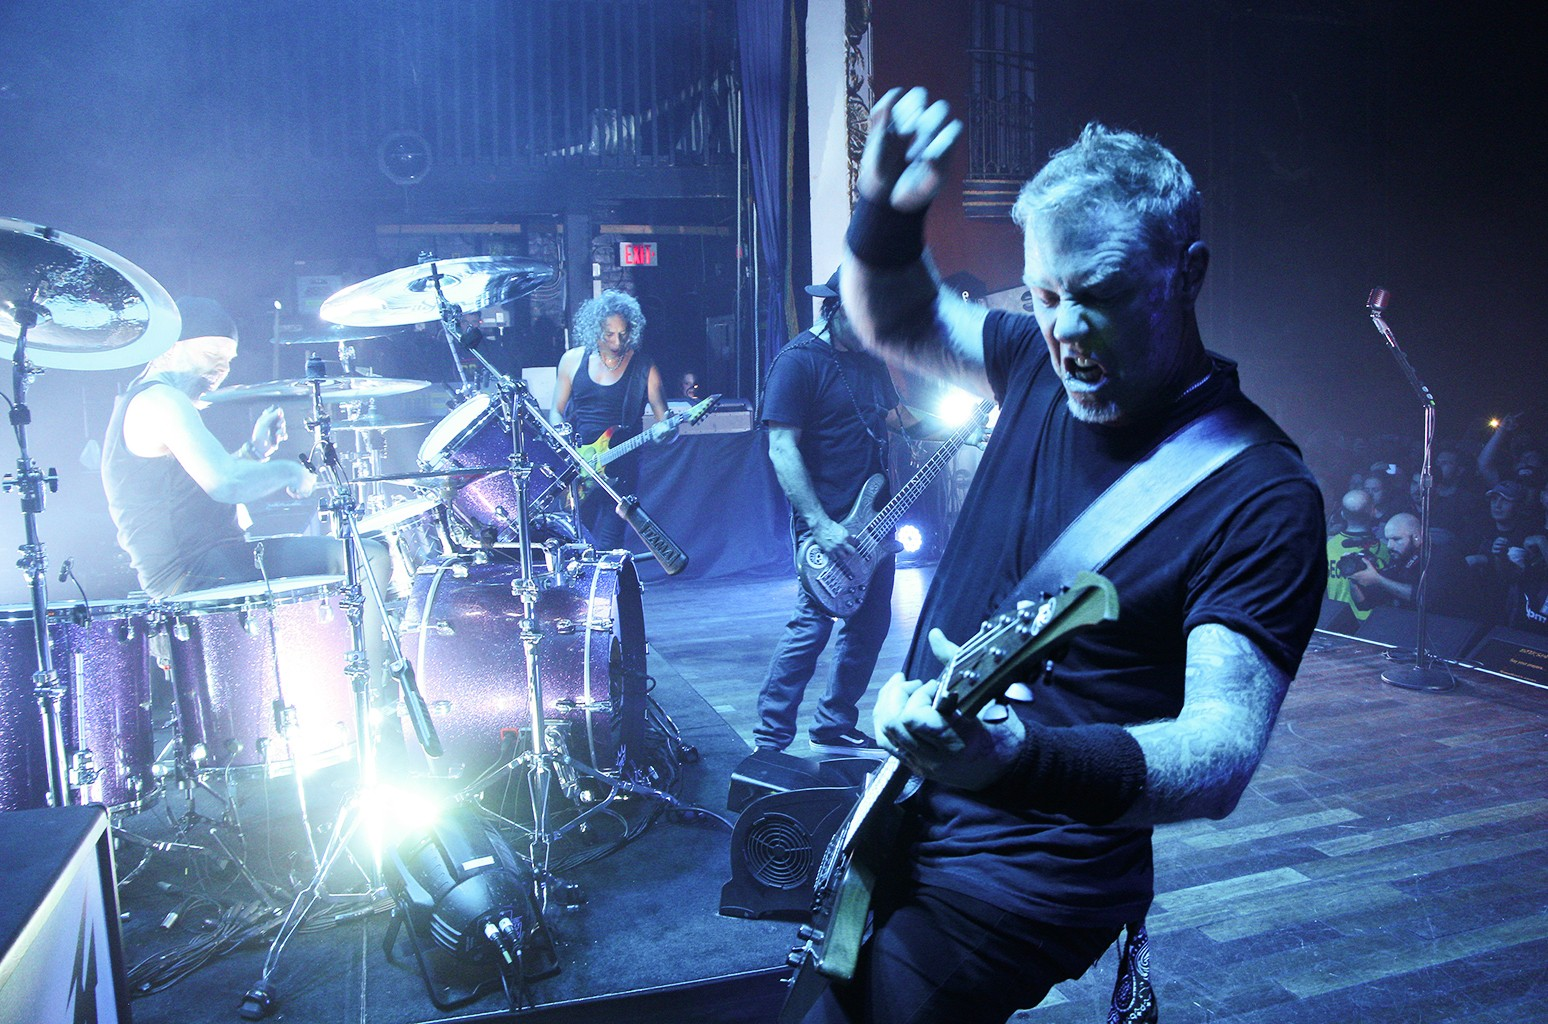 Metallica perform at The Opera House